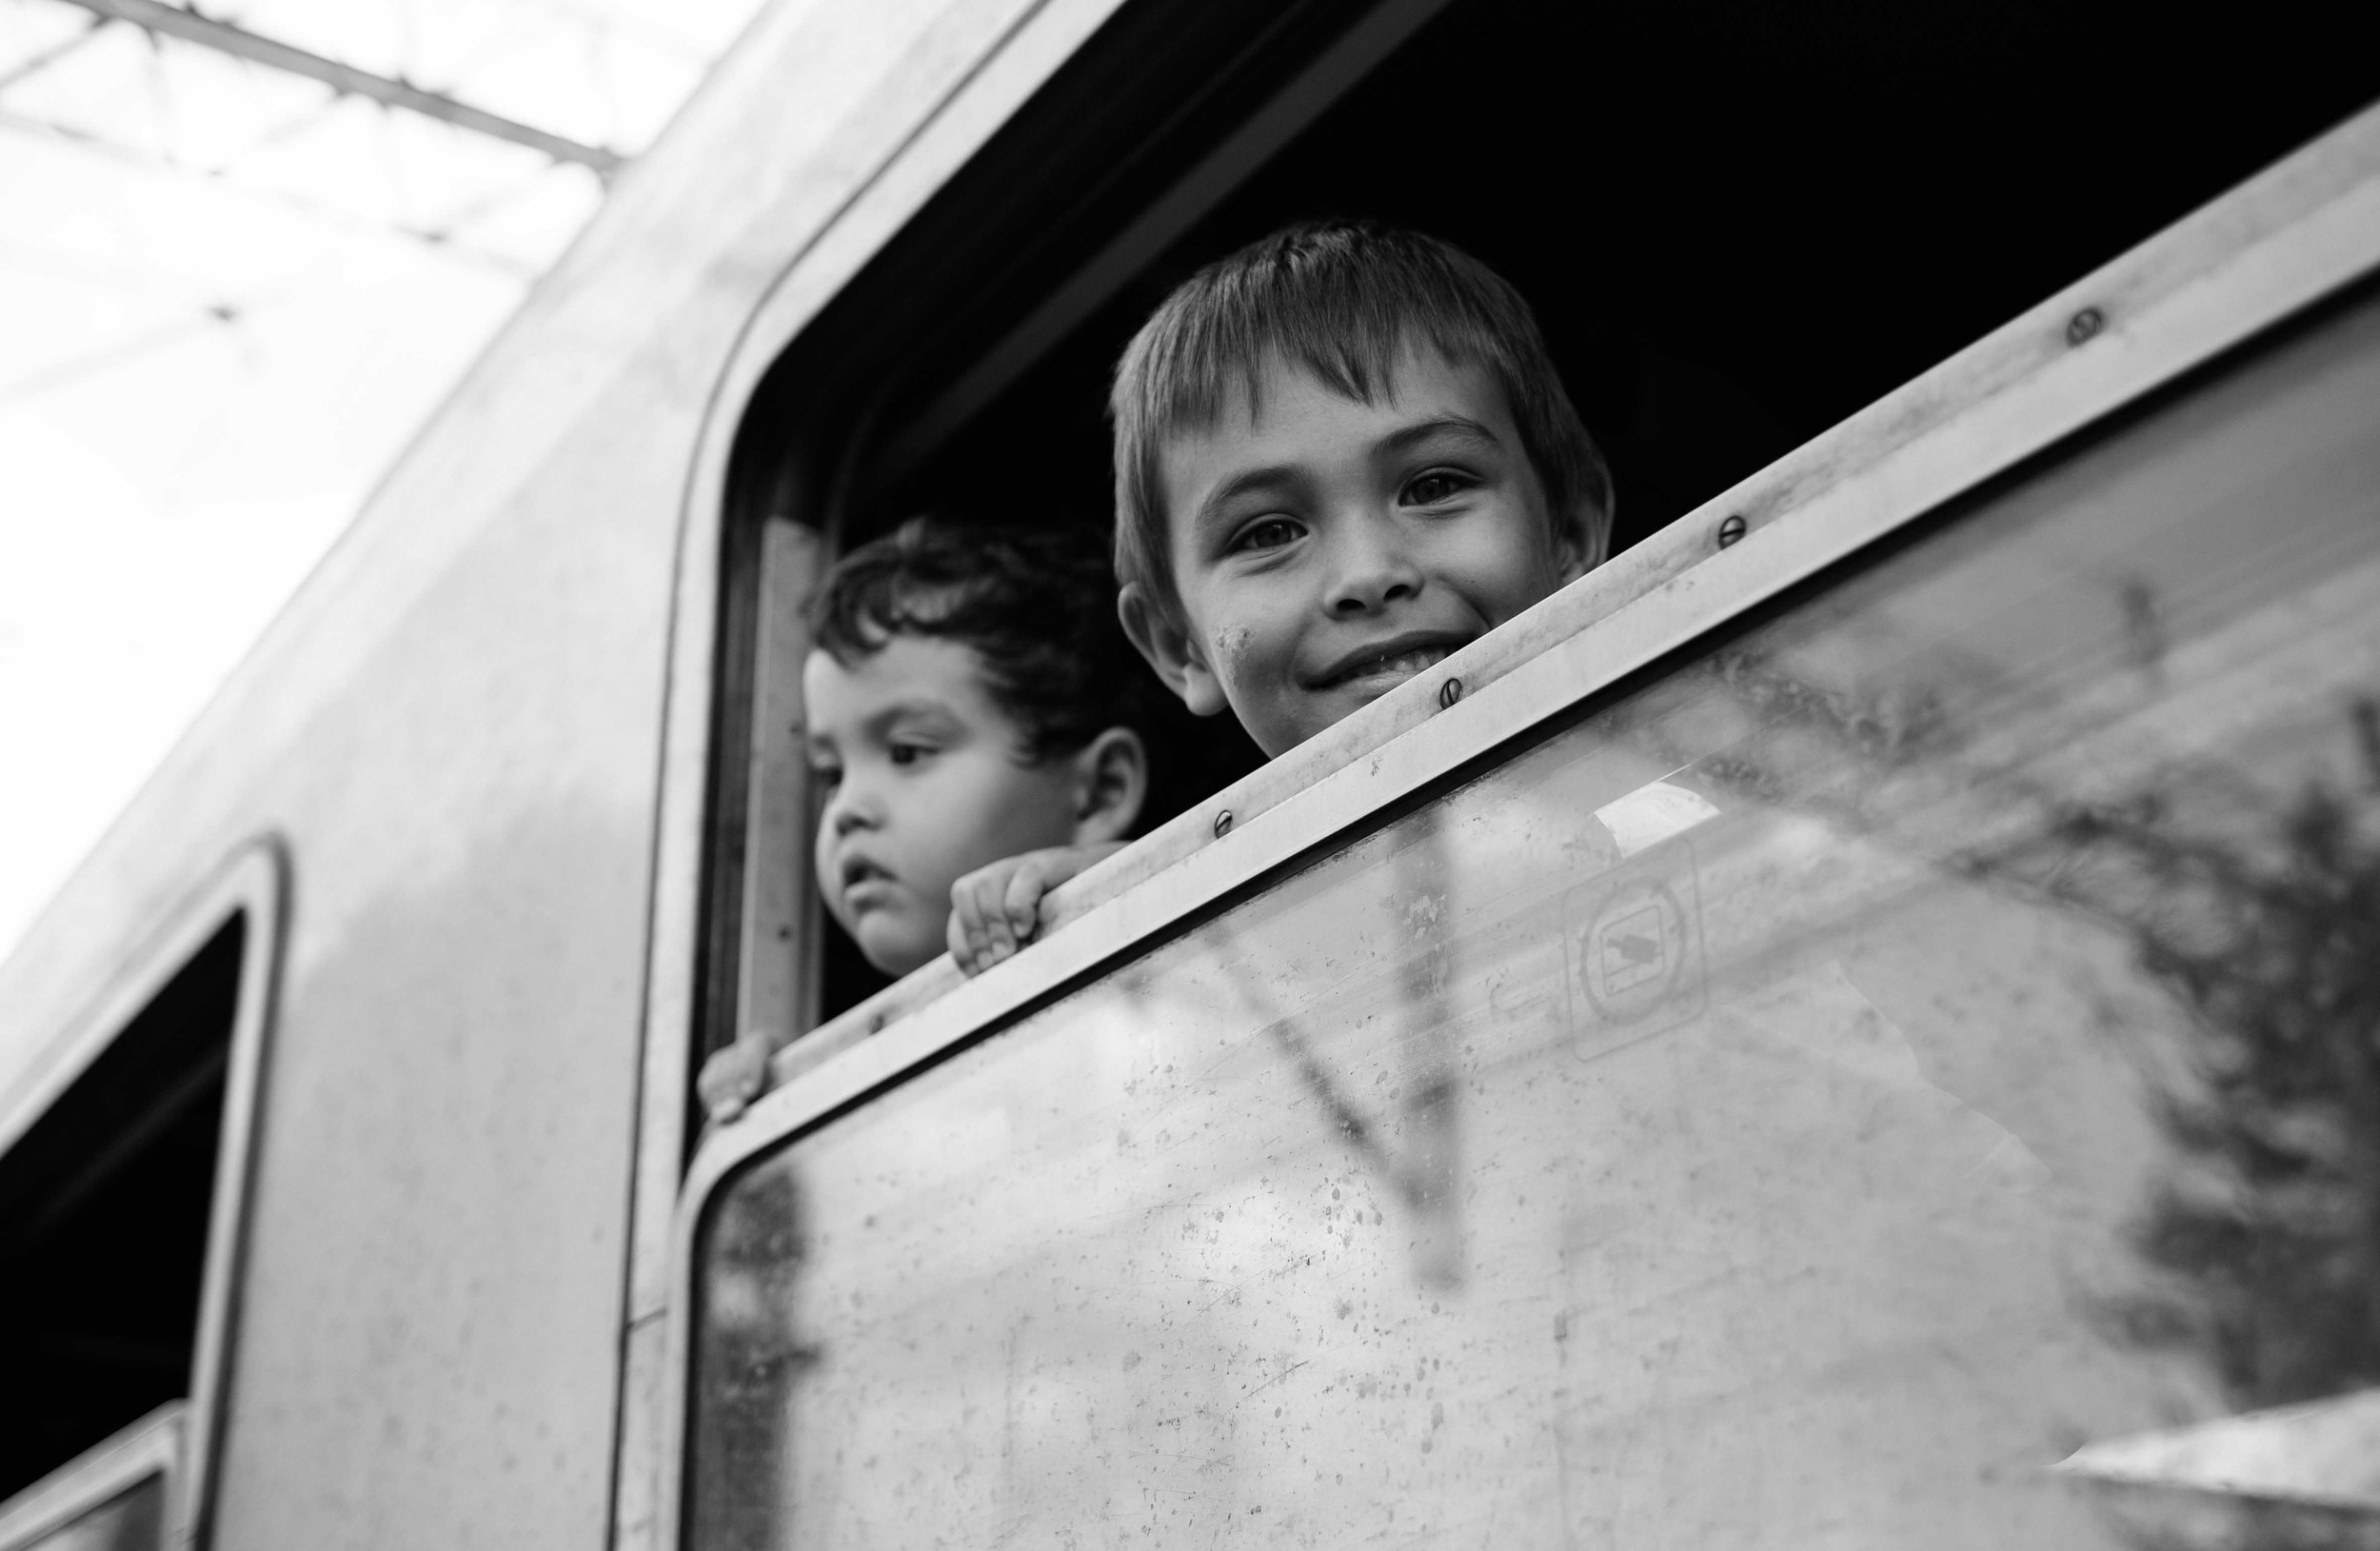 In Tovarnik, Croatia, two young boys peer out of a train that will transport refugees to Austria.